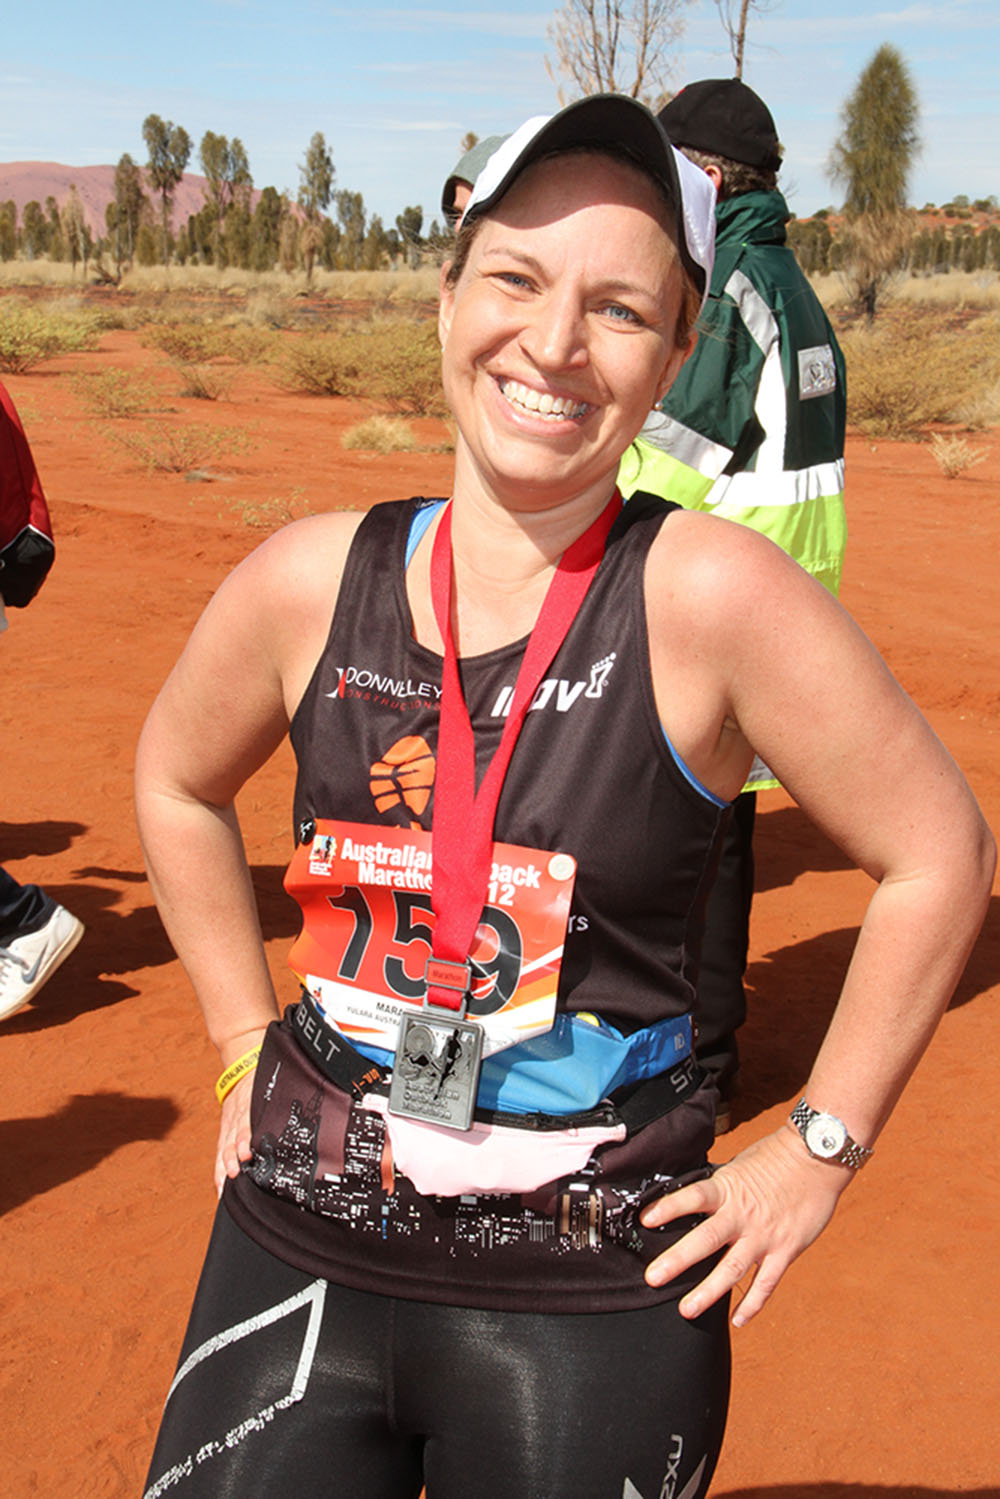 Jayne Andrews End Of Outback Marathon 2012